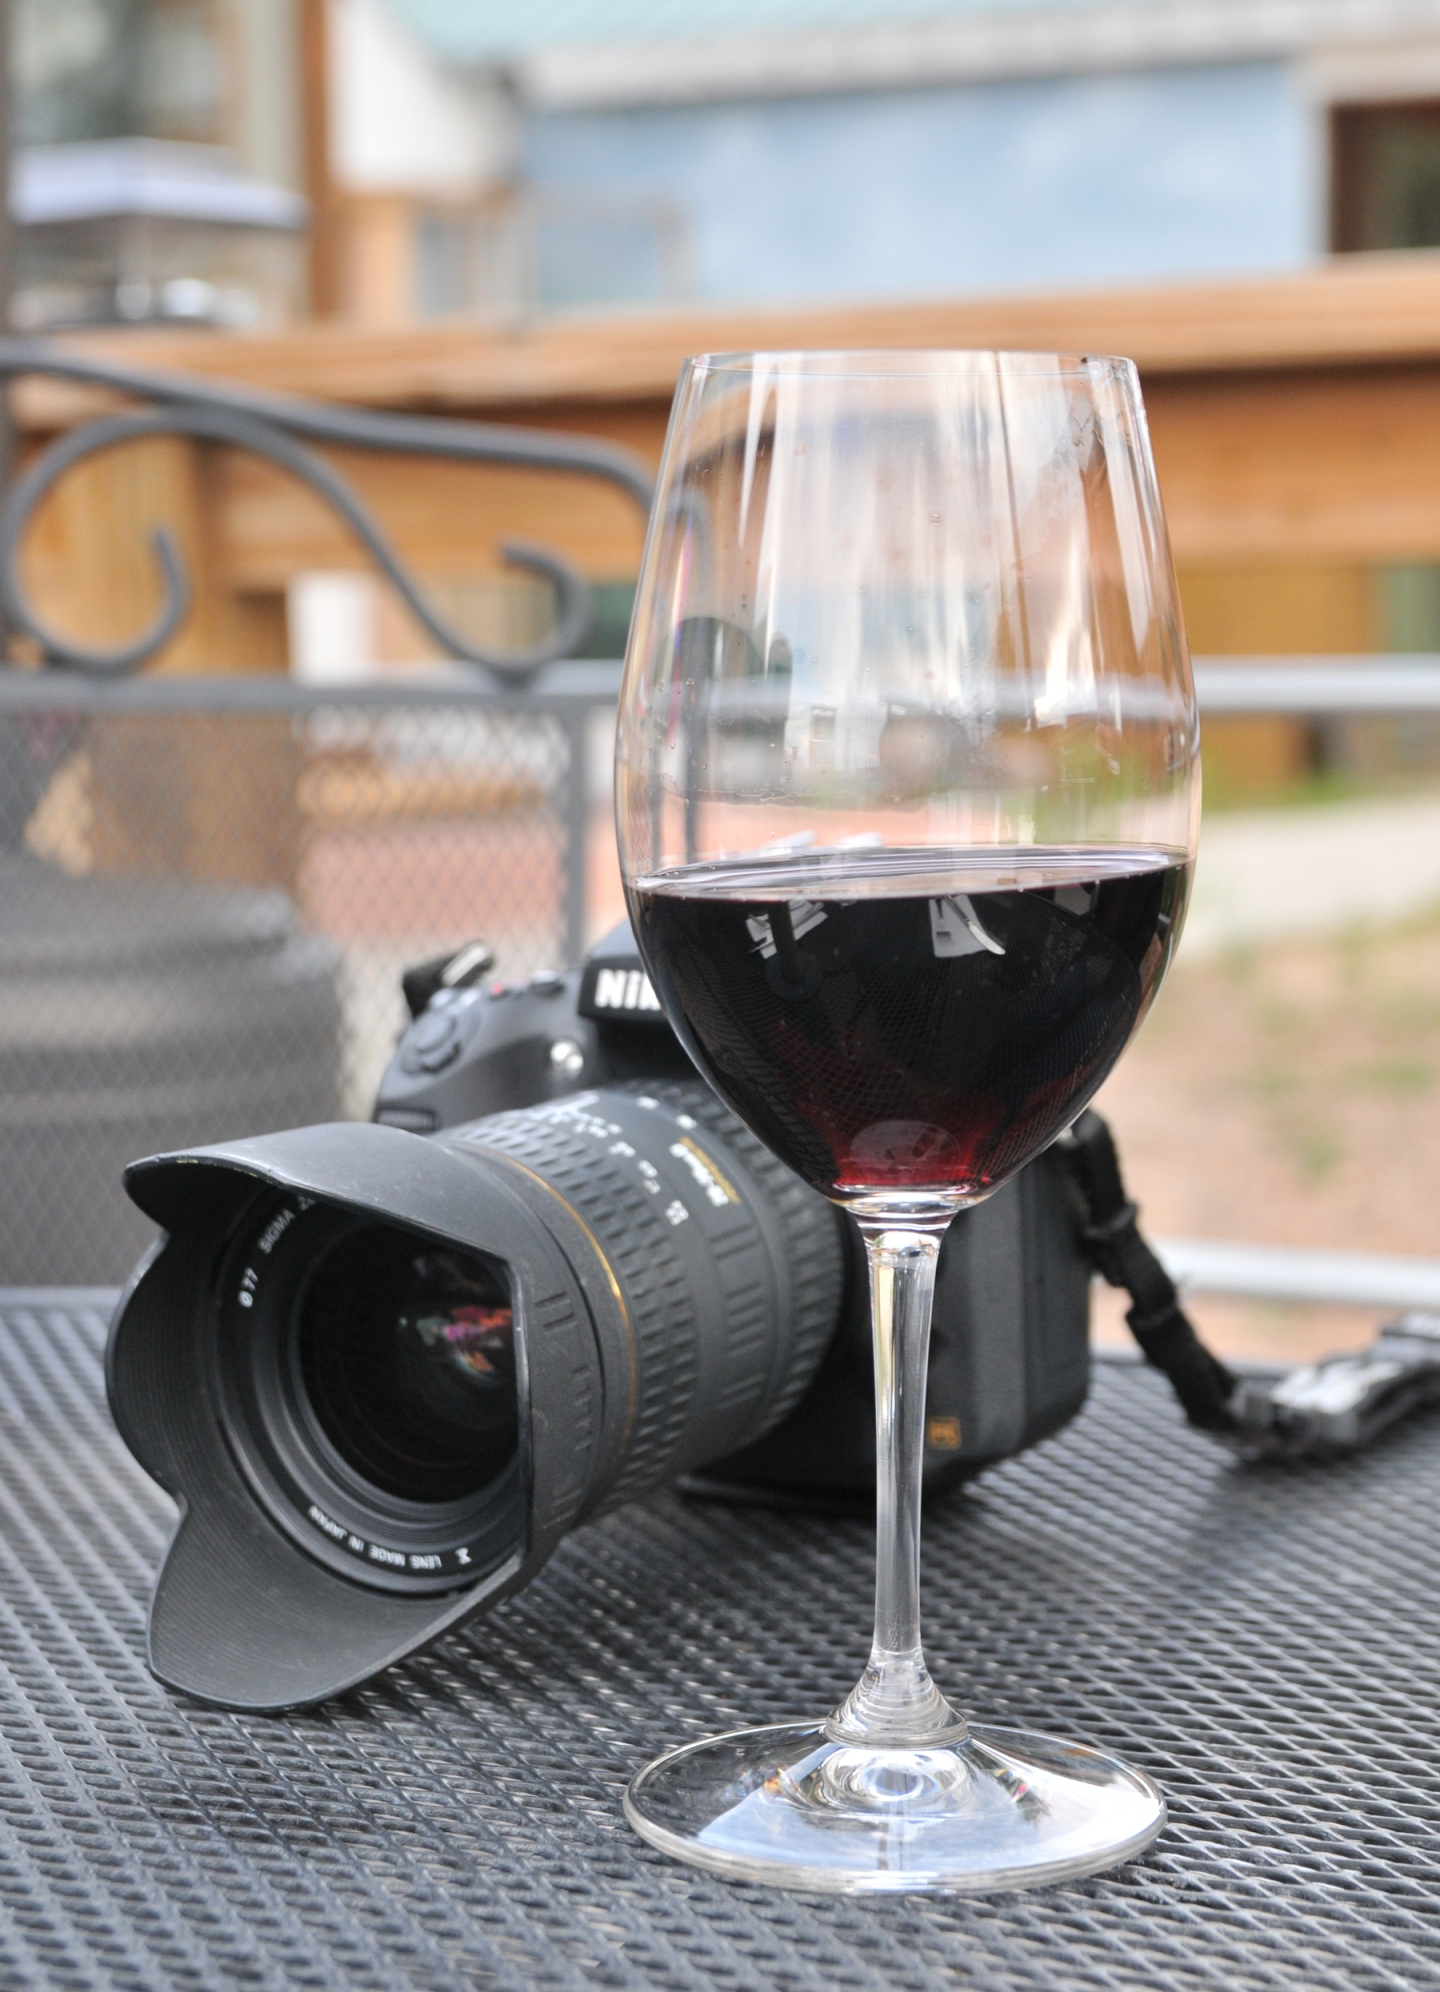 Camera and cabernet